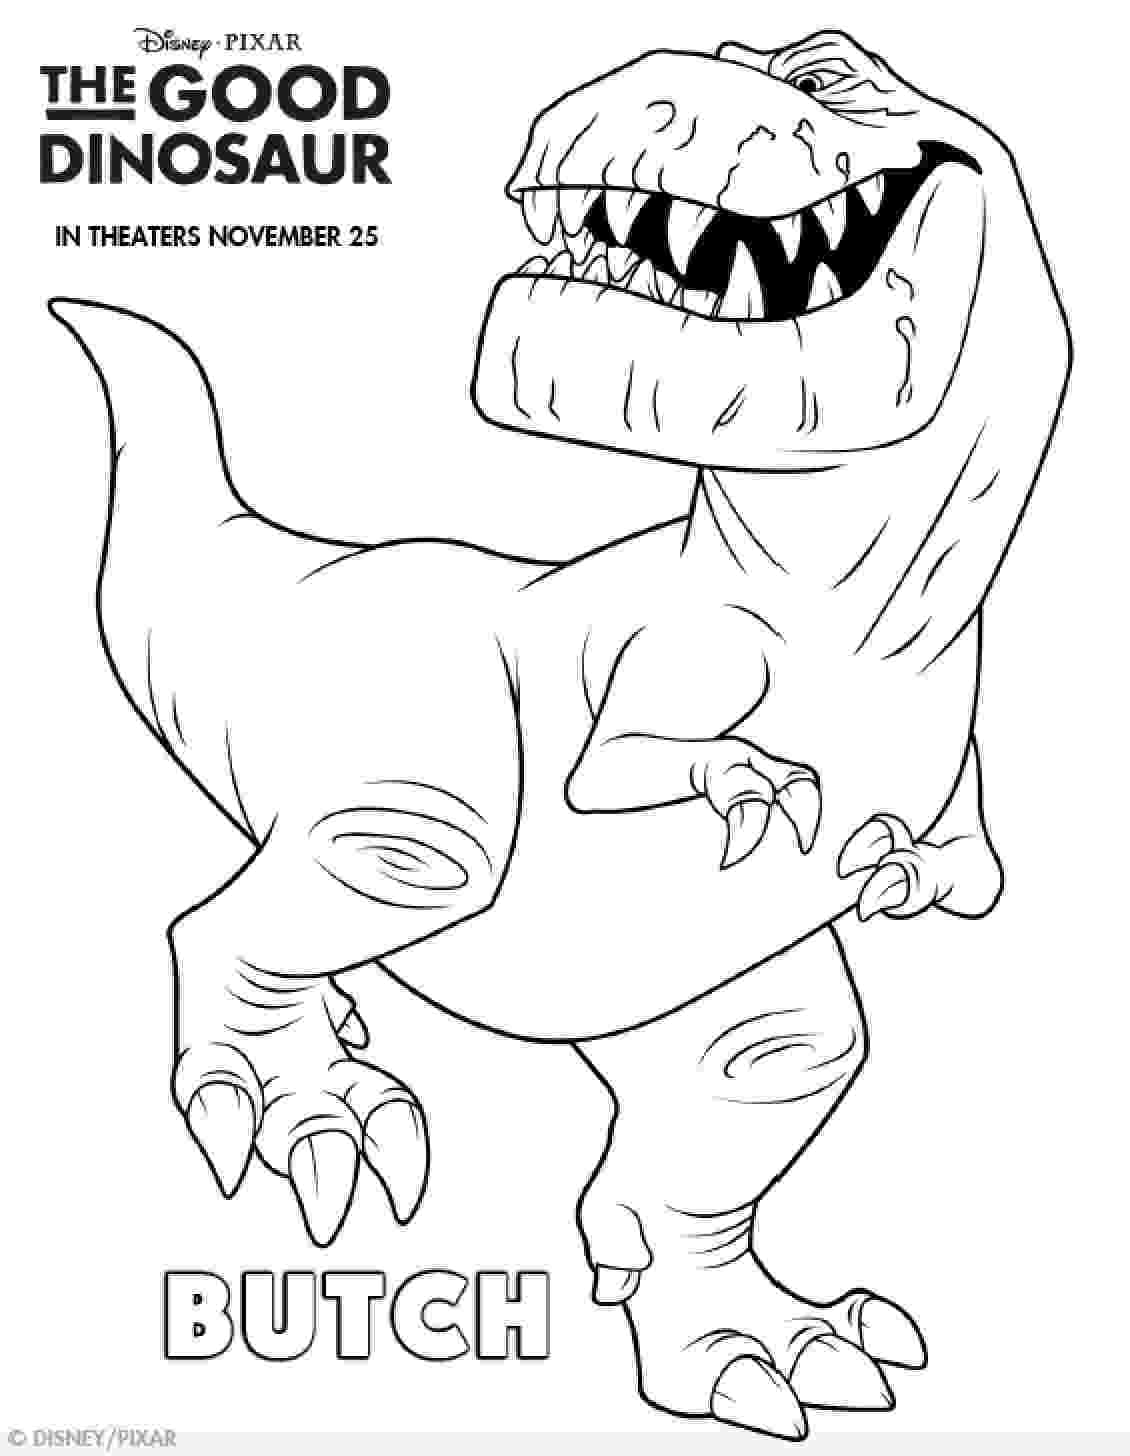 dinosaur coloring pages free printable baby dinosaur coloring page free download on clipartmag coloring printable pages dinosaur free